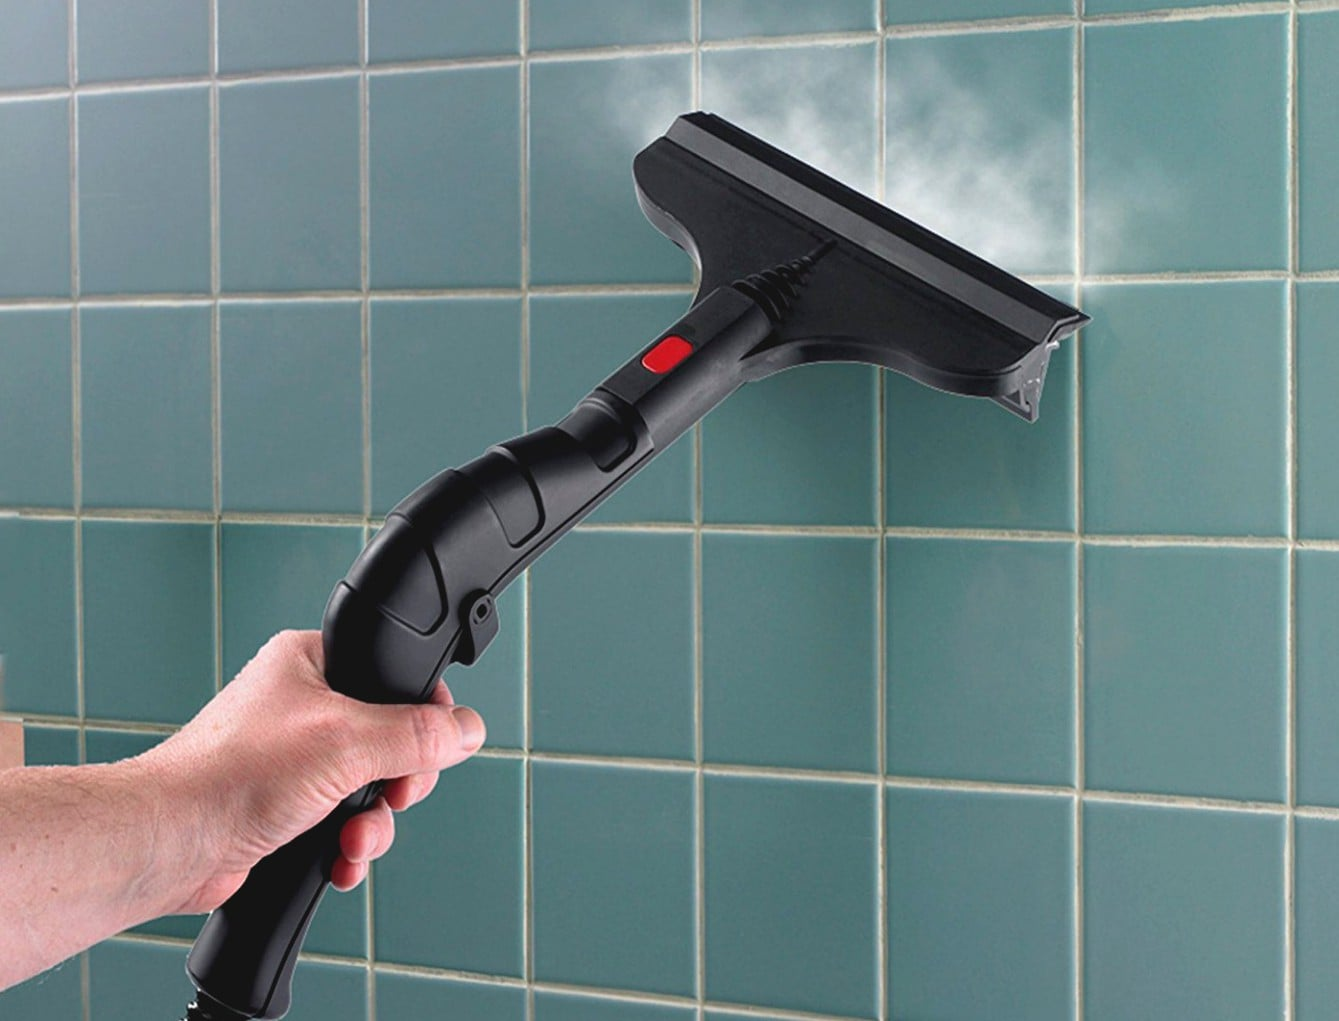 5 best steam cleaner for tile floors and grout review 2018 buying guide pickthevacuum. Black Bedroom Furniture Sets. Home Design Ideas